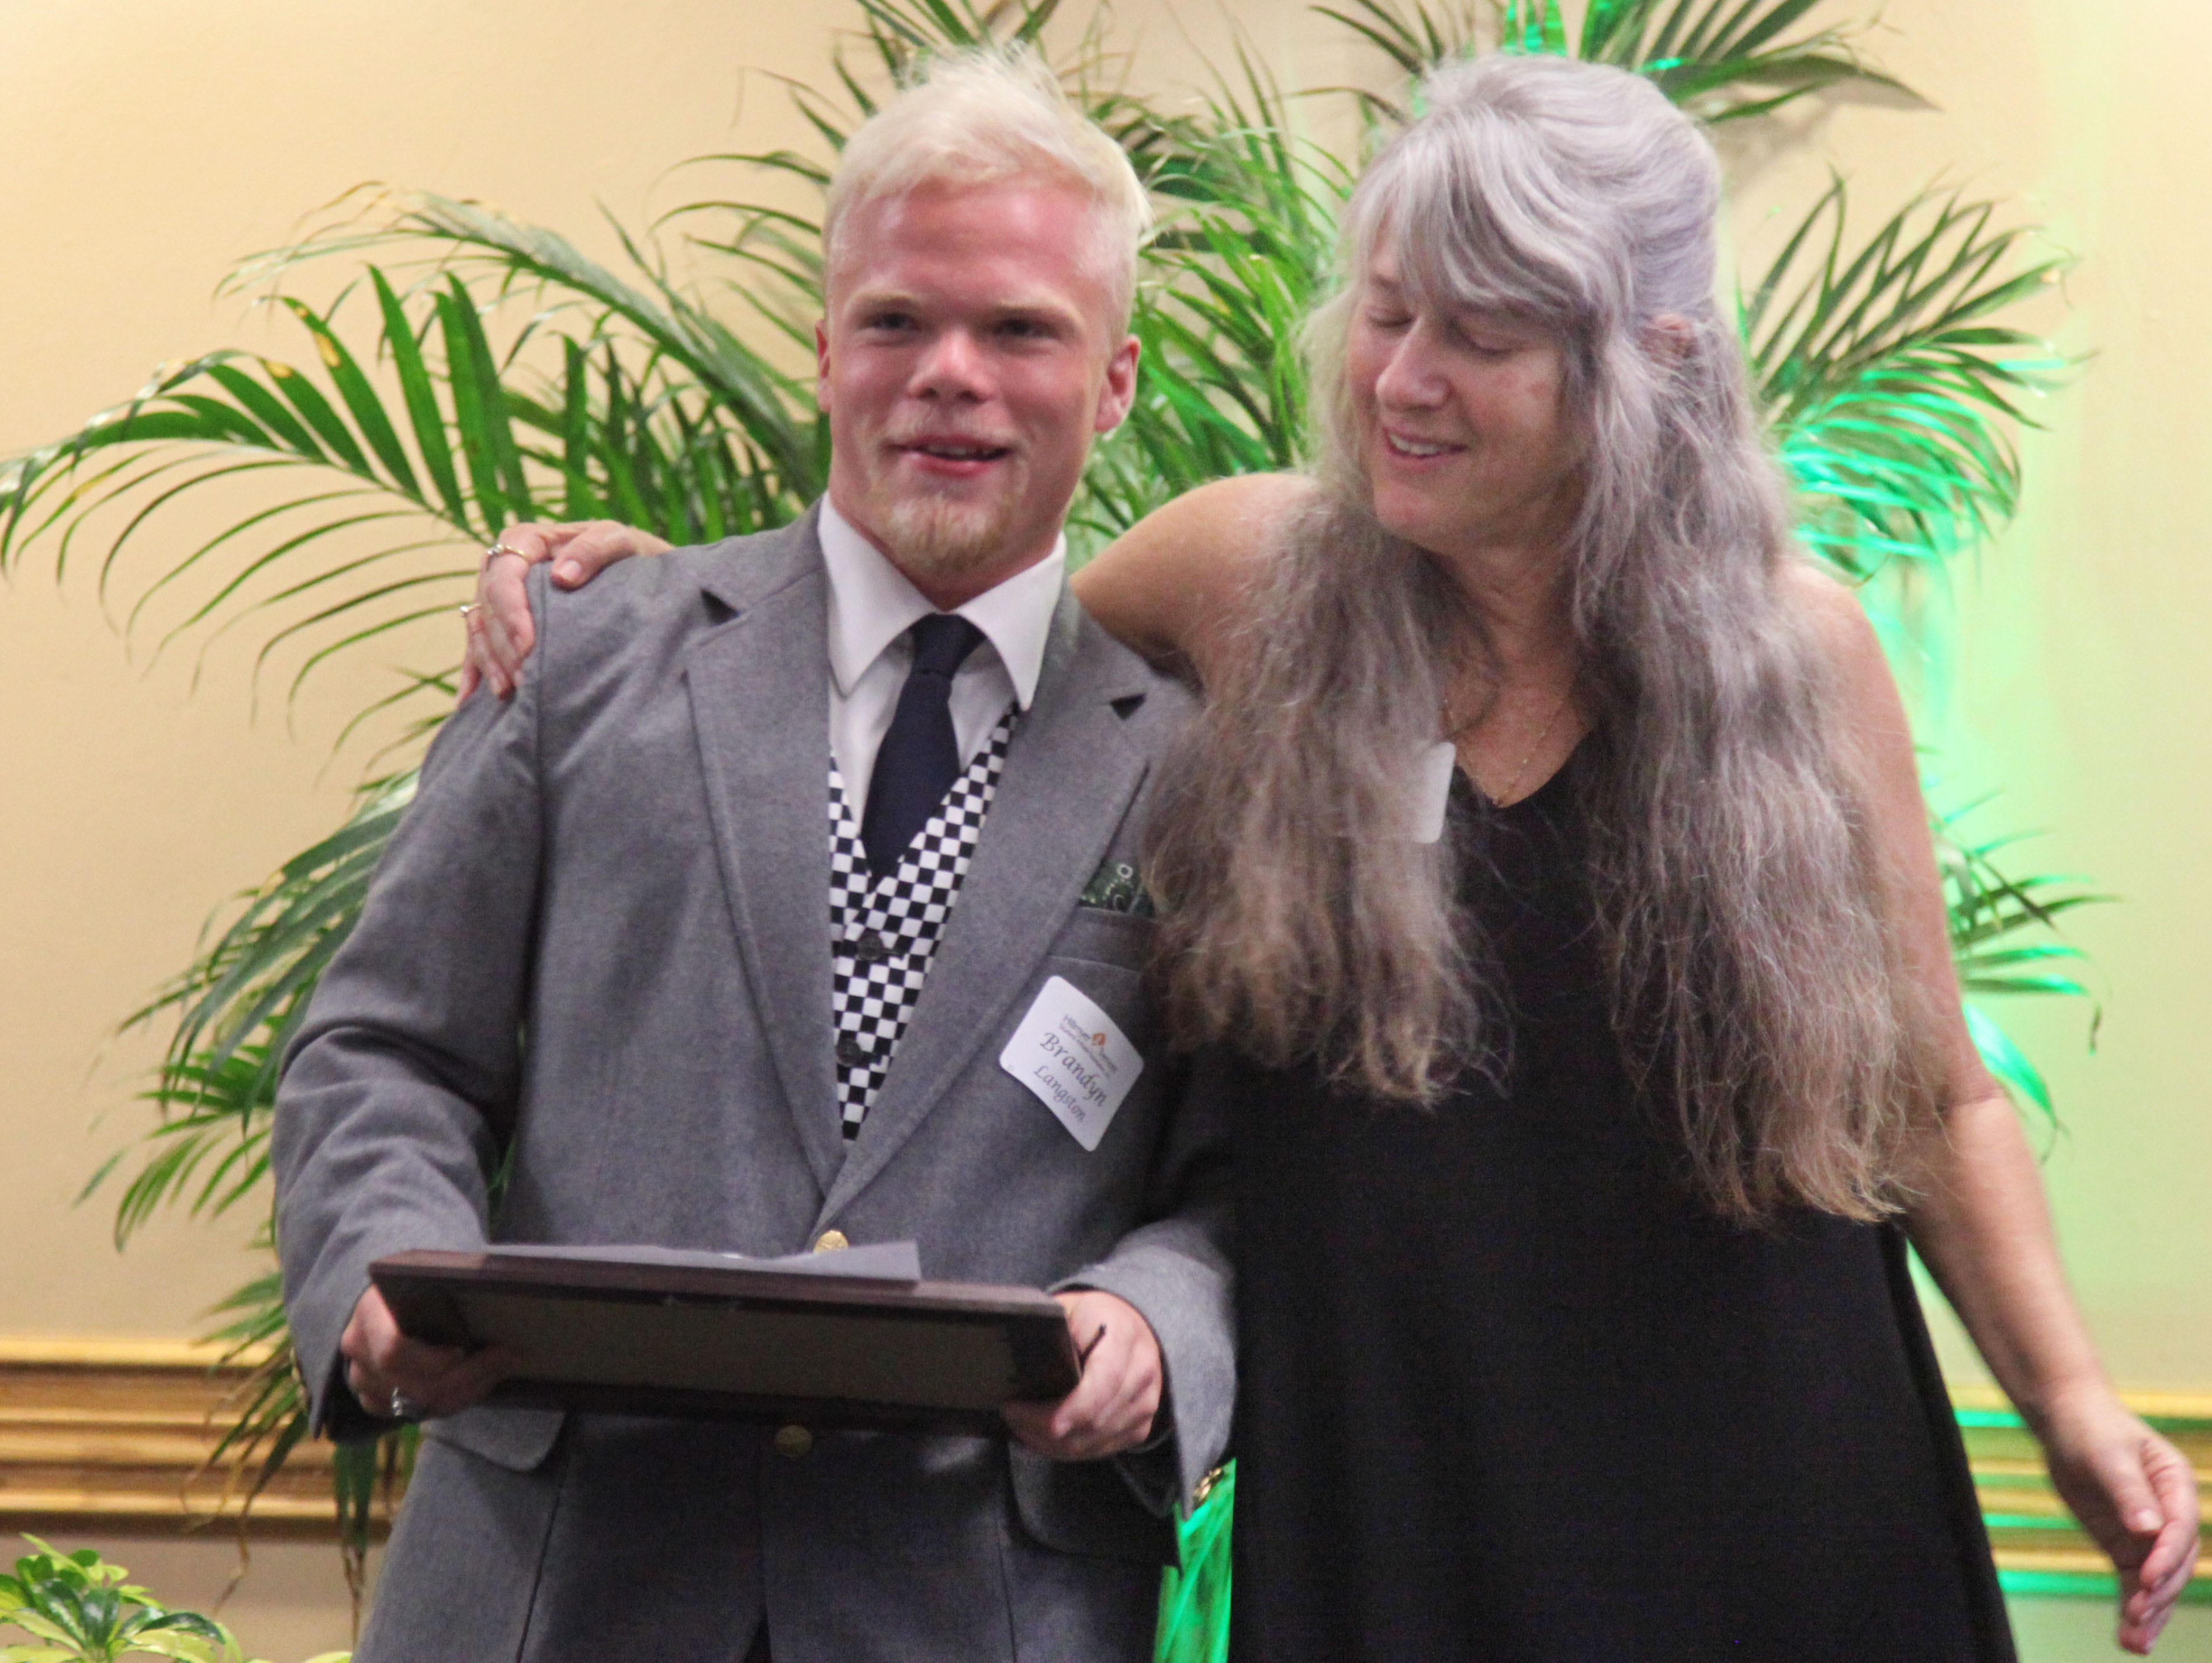 Brandyn Langston, of Dunbar High School is congratulated by teacher Laurie Metz during the Hillmyer-Tremont scholarship banquet at FGCU's Cohen Center on Monday.